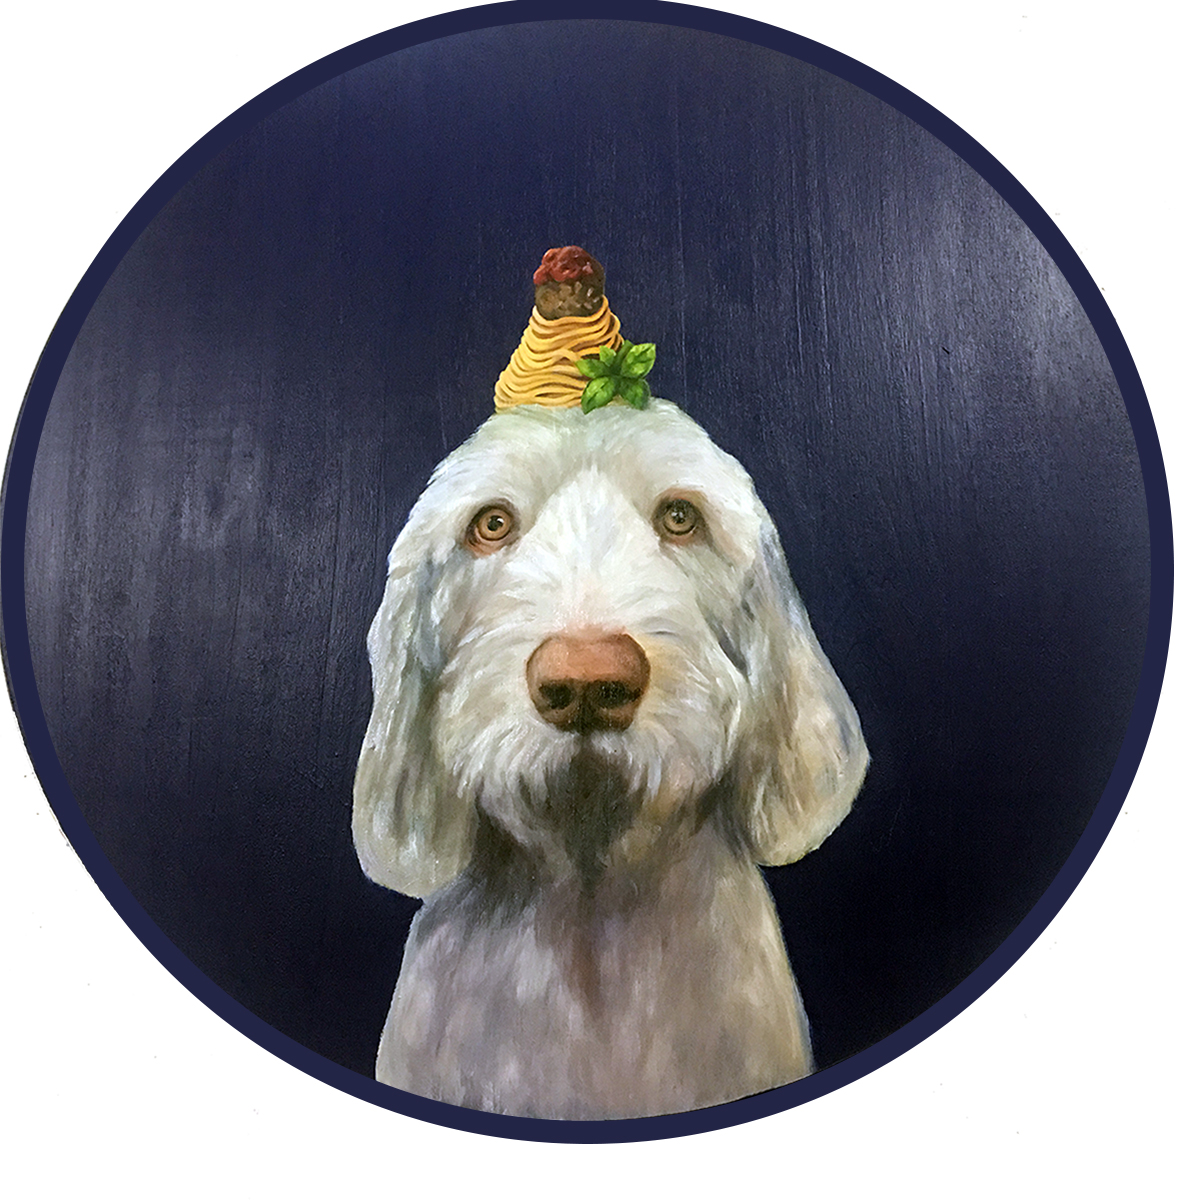 "Ellie the Spinone, 28"" in diameter oil on wood panel."